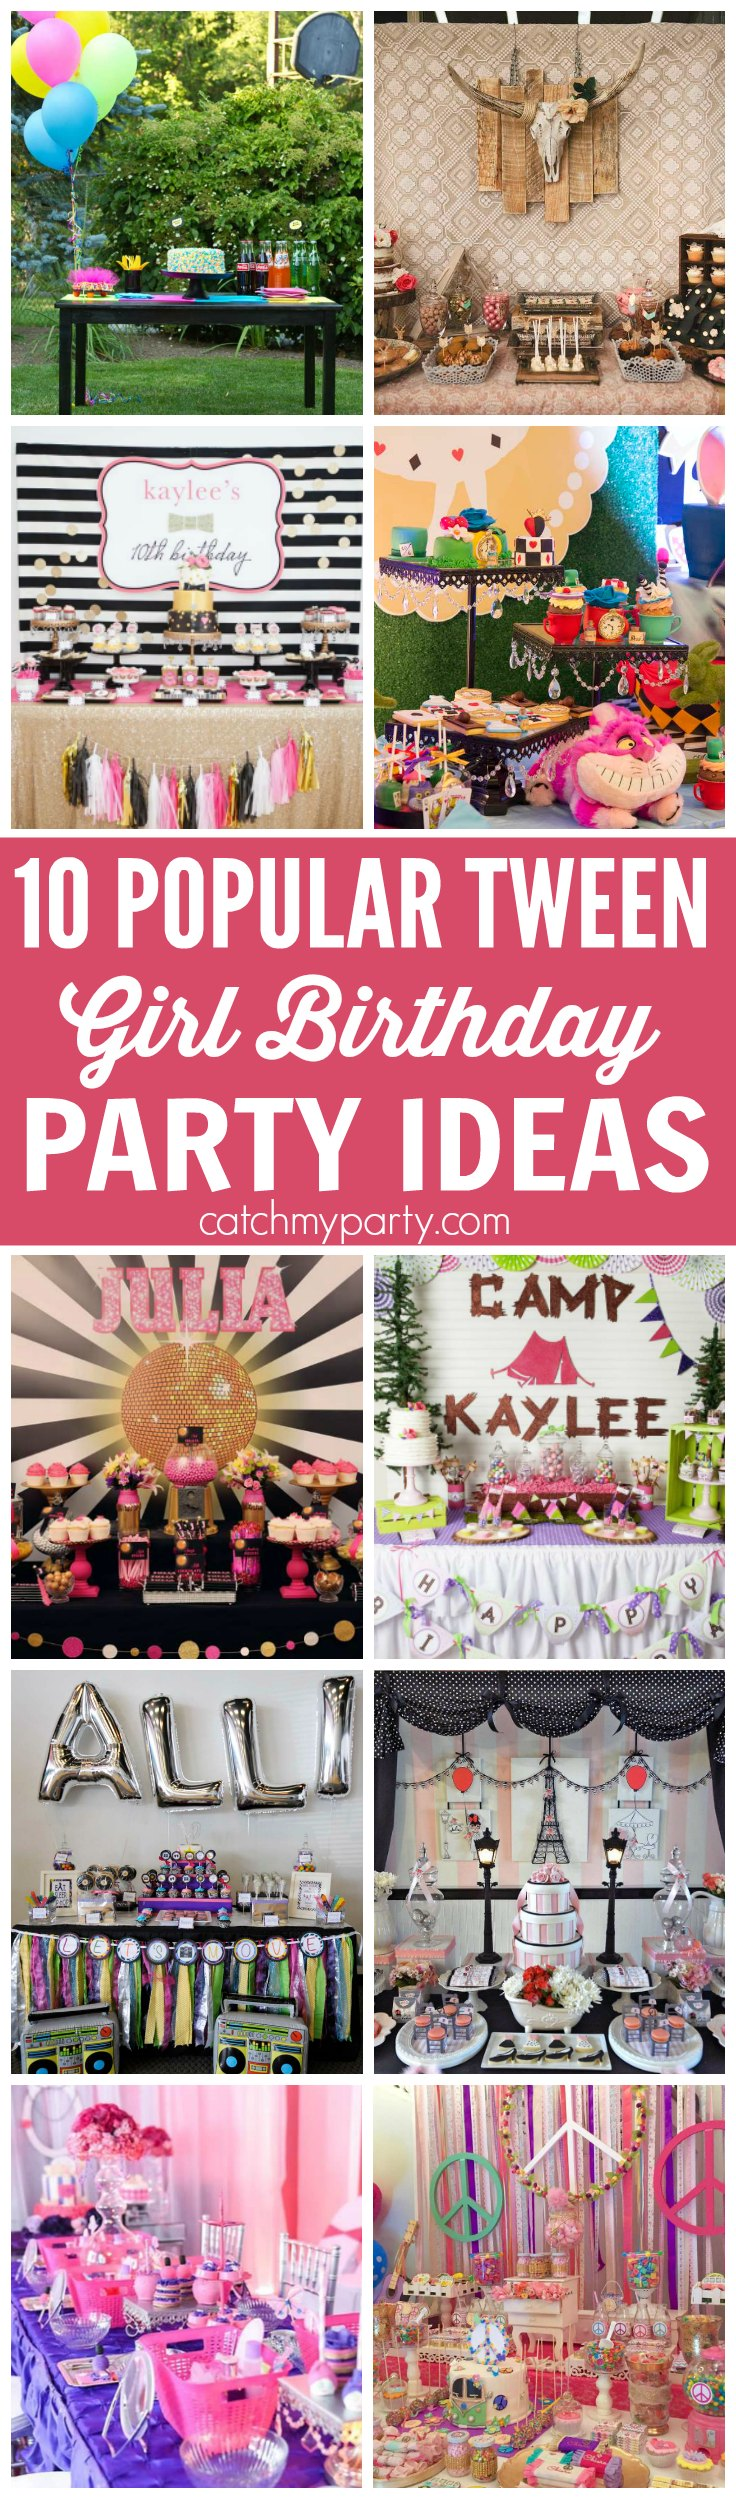 Pin ItIf Youre Looking To Throw A Birthday Party For Your Tween Please Take Look At This Roundup Here Are 10 Of The Most Awesome Themes